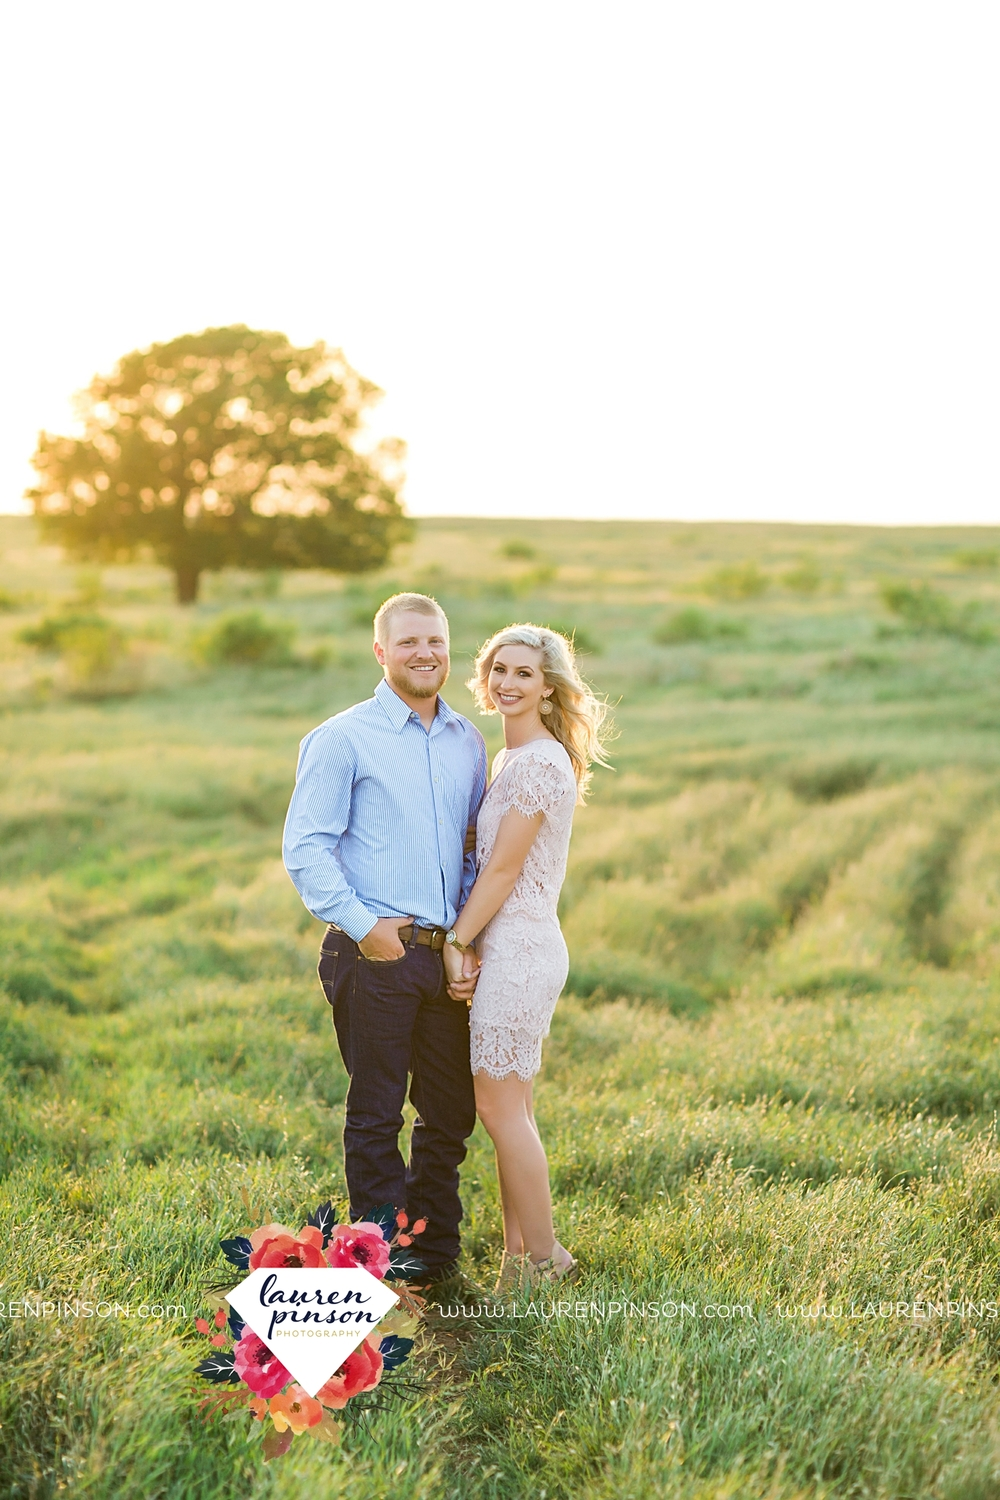 wichita-falls-texas-wedding-photographer-scotland-texas-engagement-session-country-barn-field-windthorst_2763.jpg